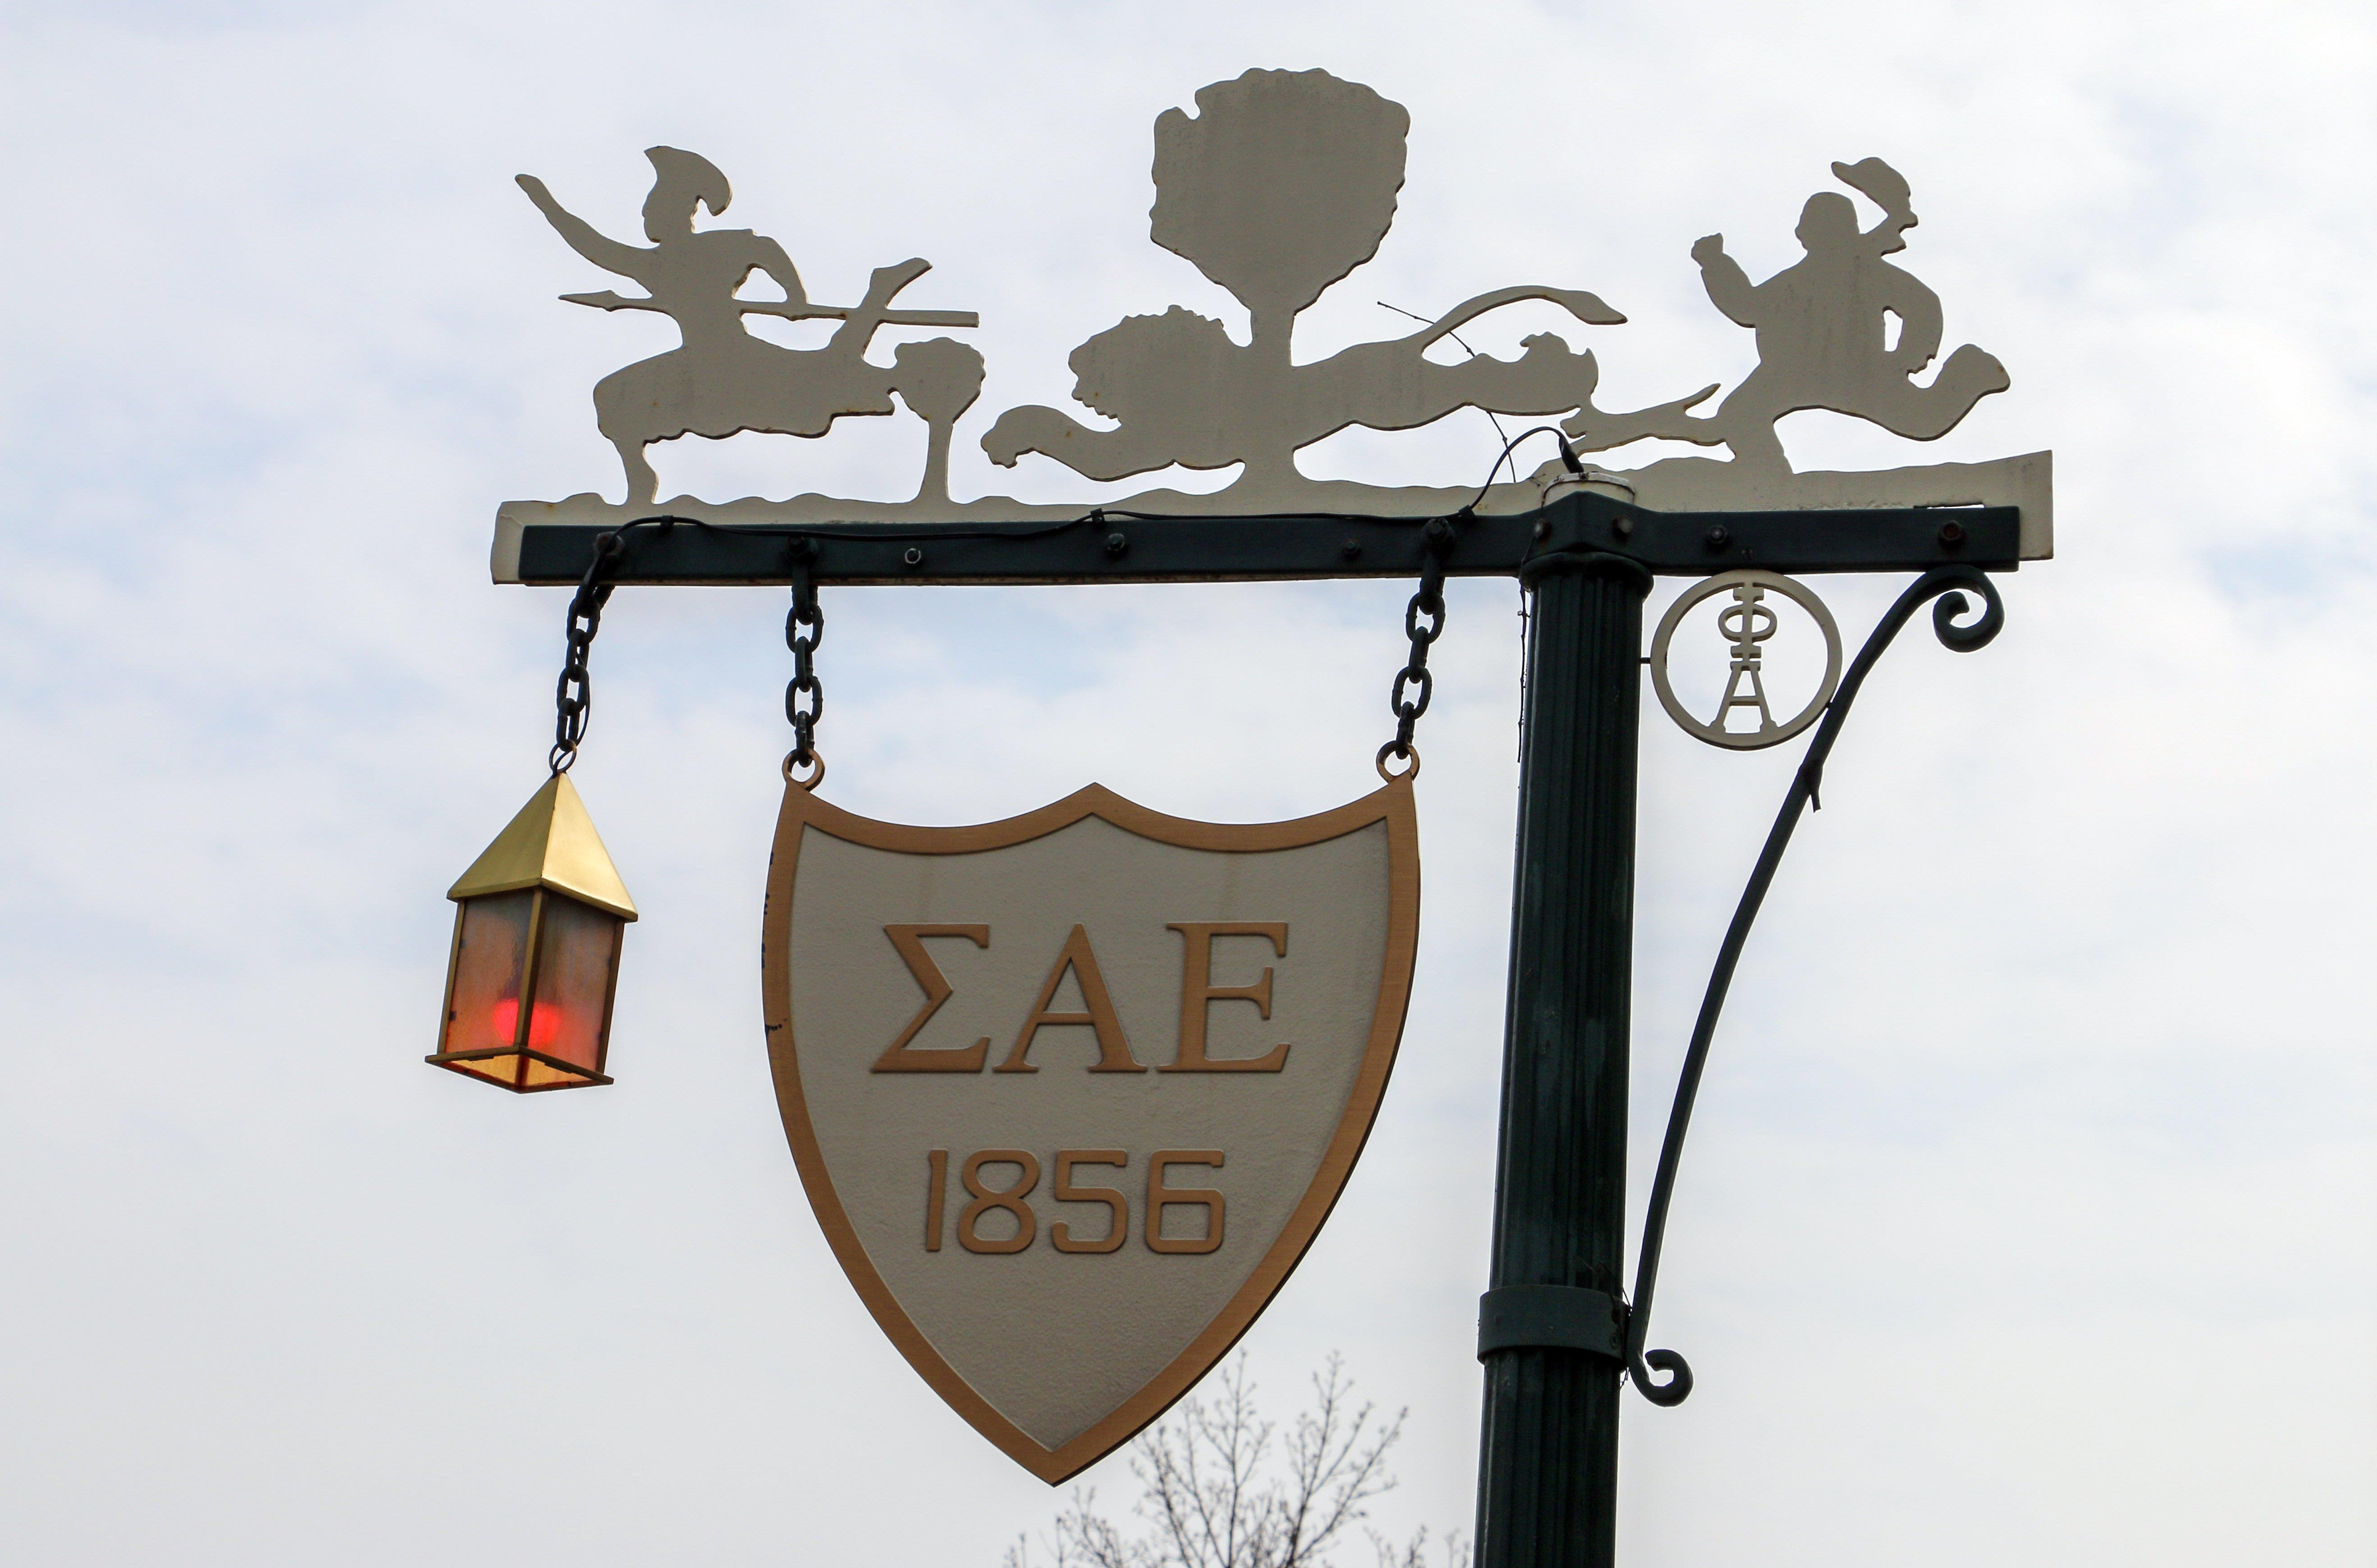 Sigma Alpha Epsilon Says It Will Unveil Plan to 'Eliminate' Racial Discrimination and Insensitivity